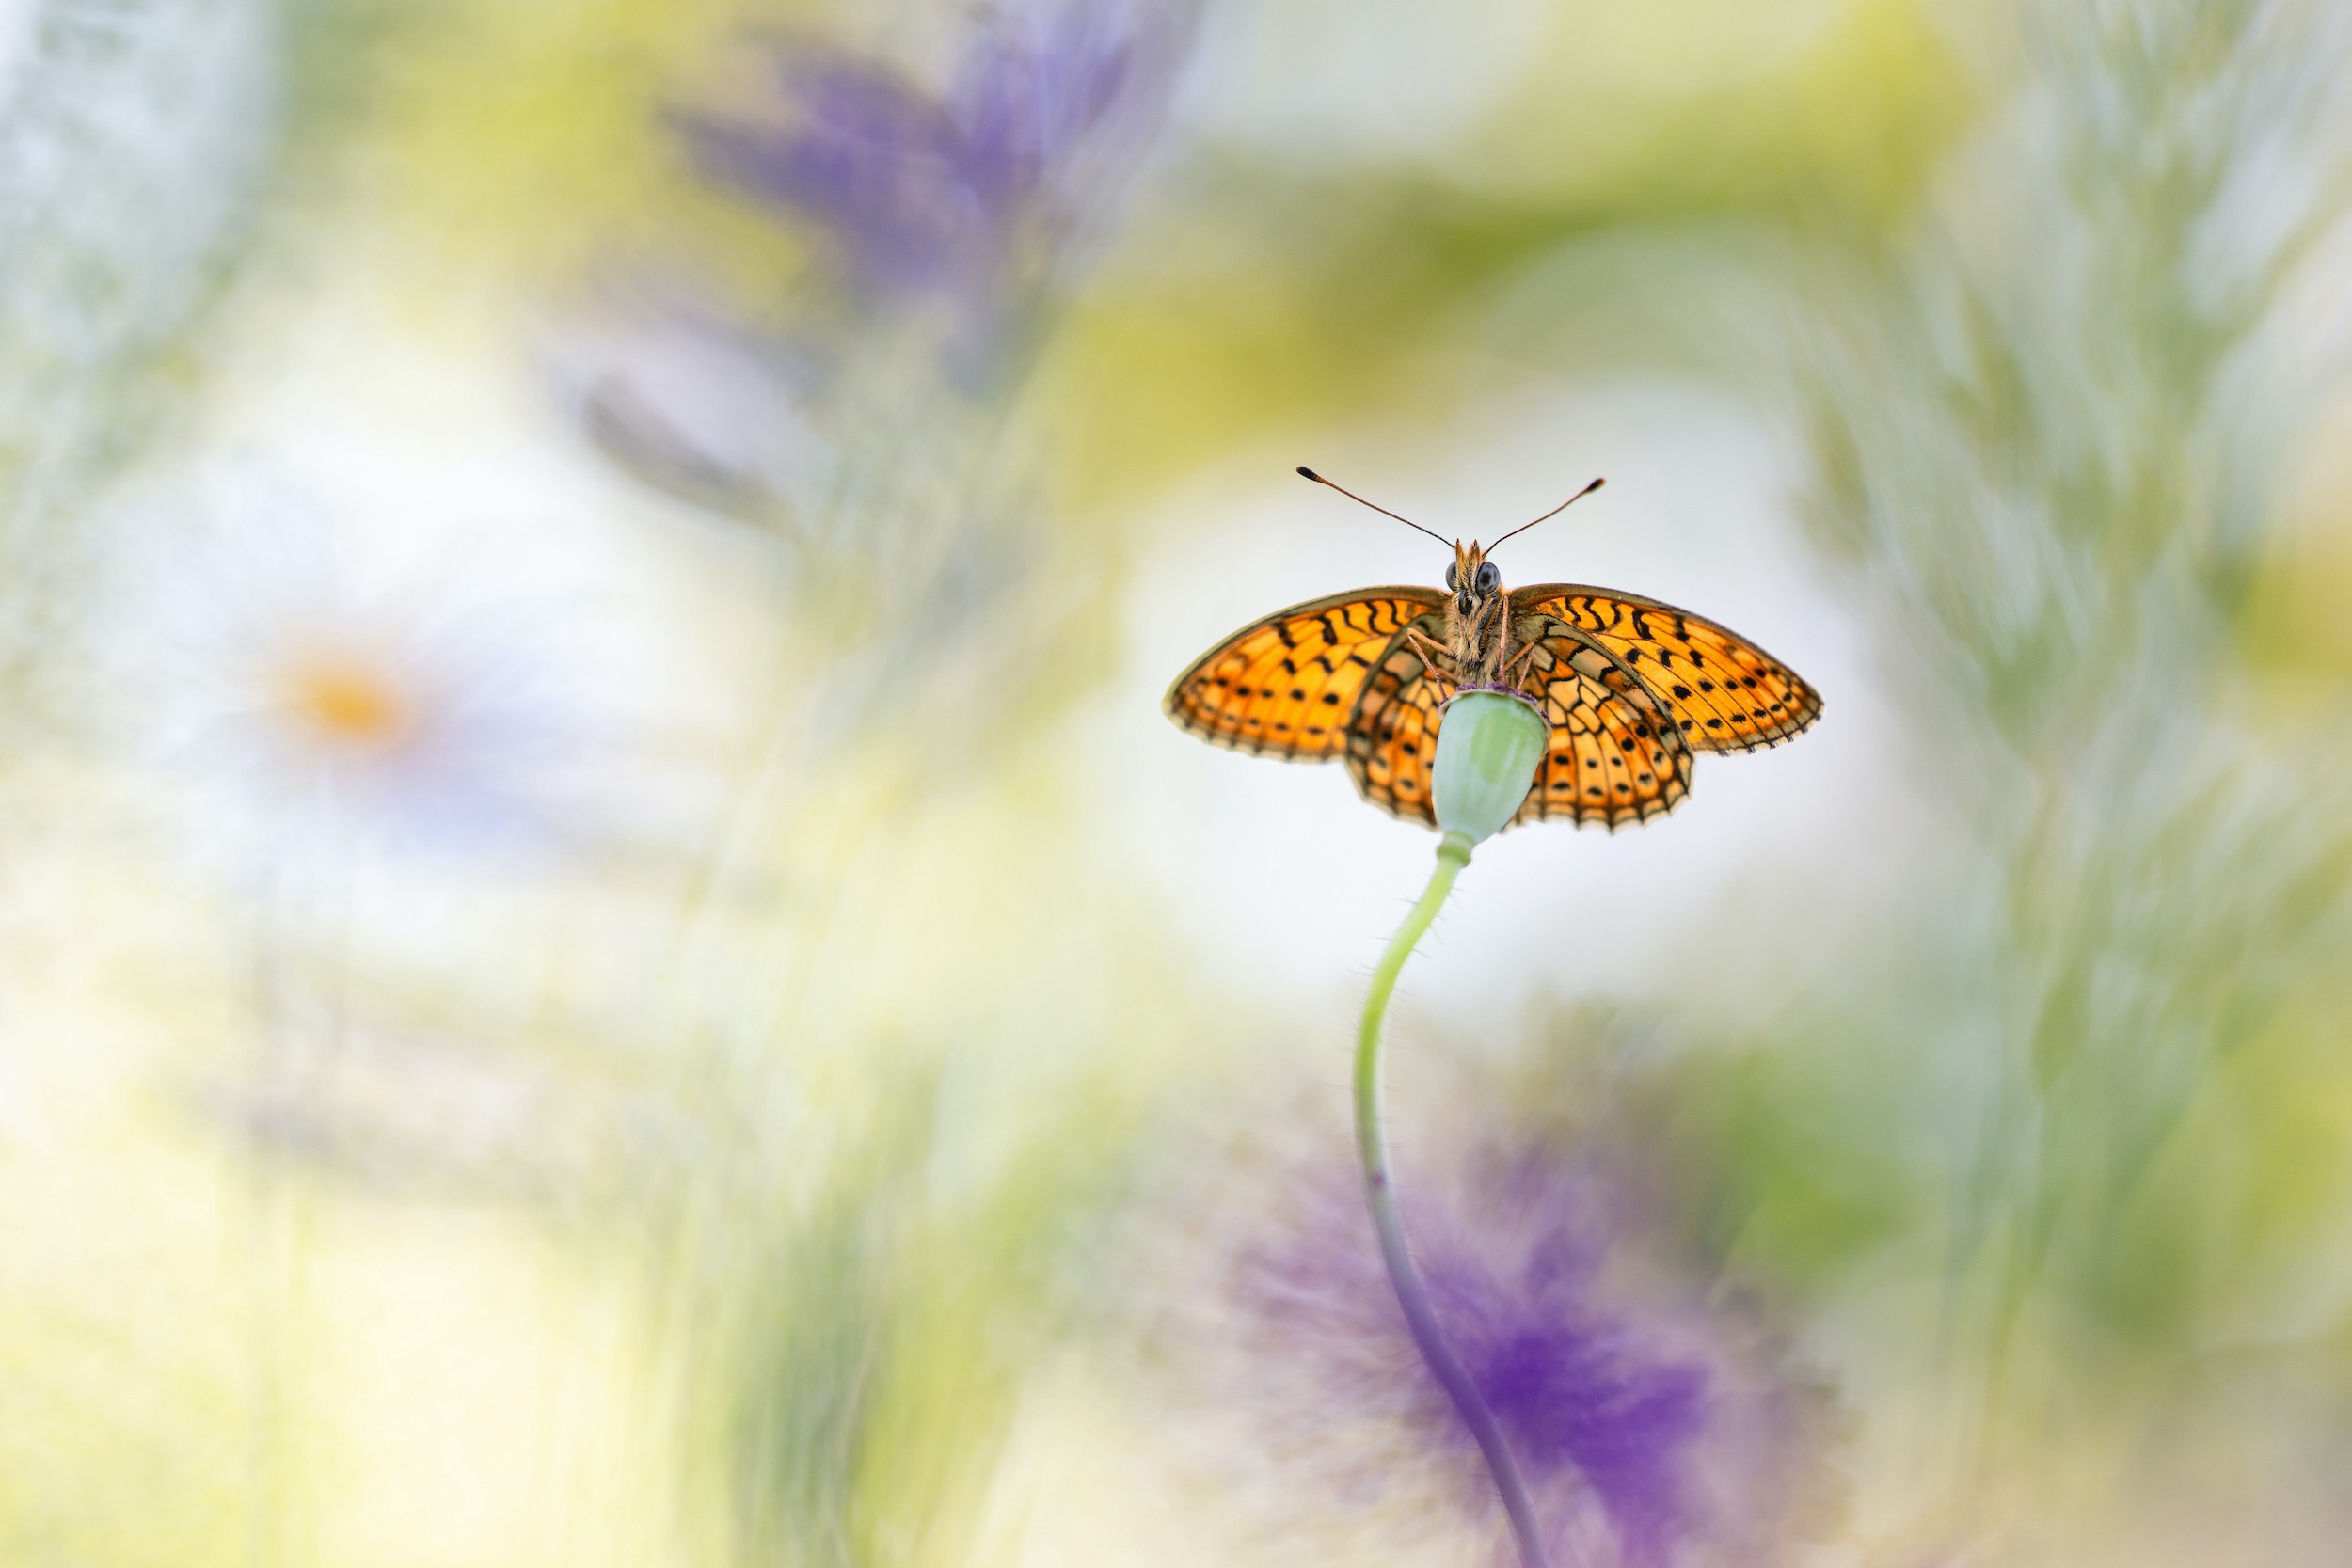 A beautiful orange butterfly is photographed very clear while hanging on a green bud, bright flowers in the back are blurry